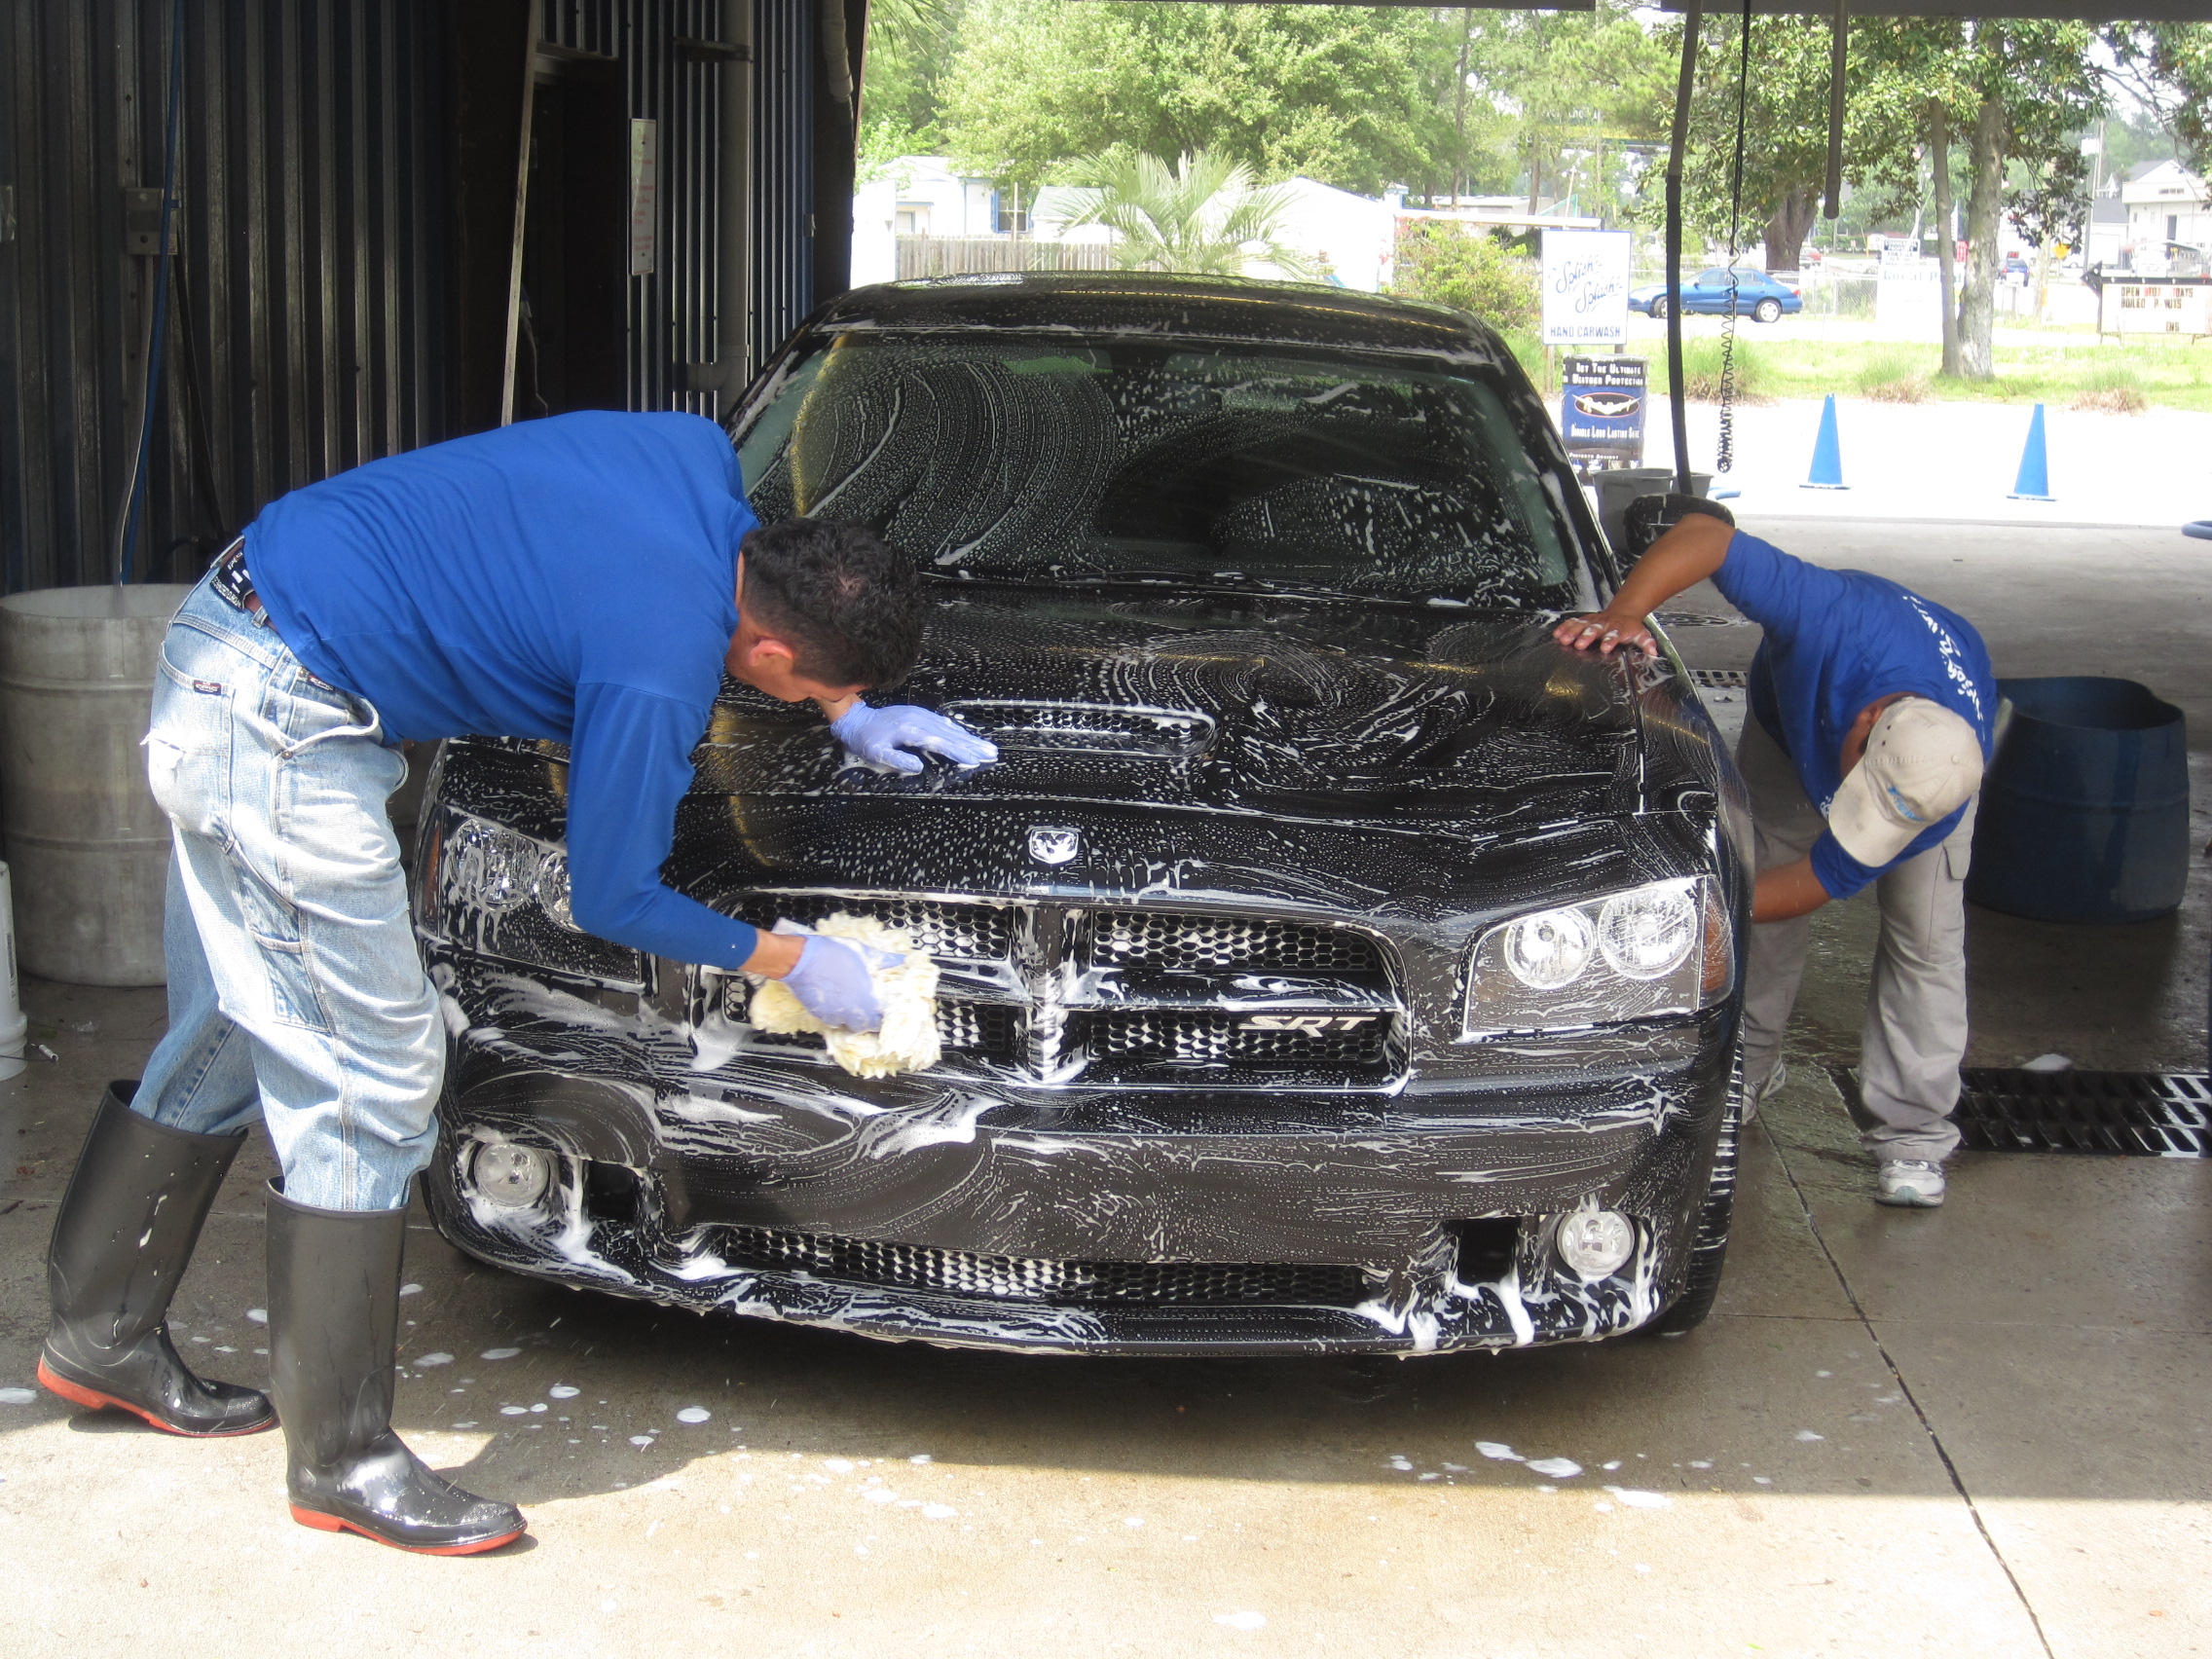 10 Steps For Starting a Car Wash From The Ground Up